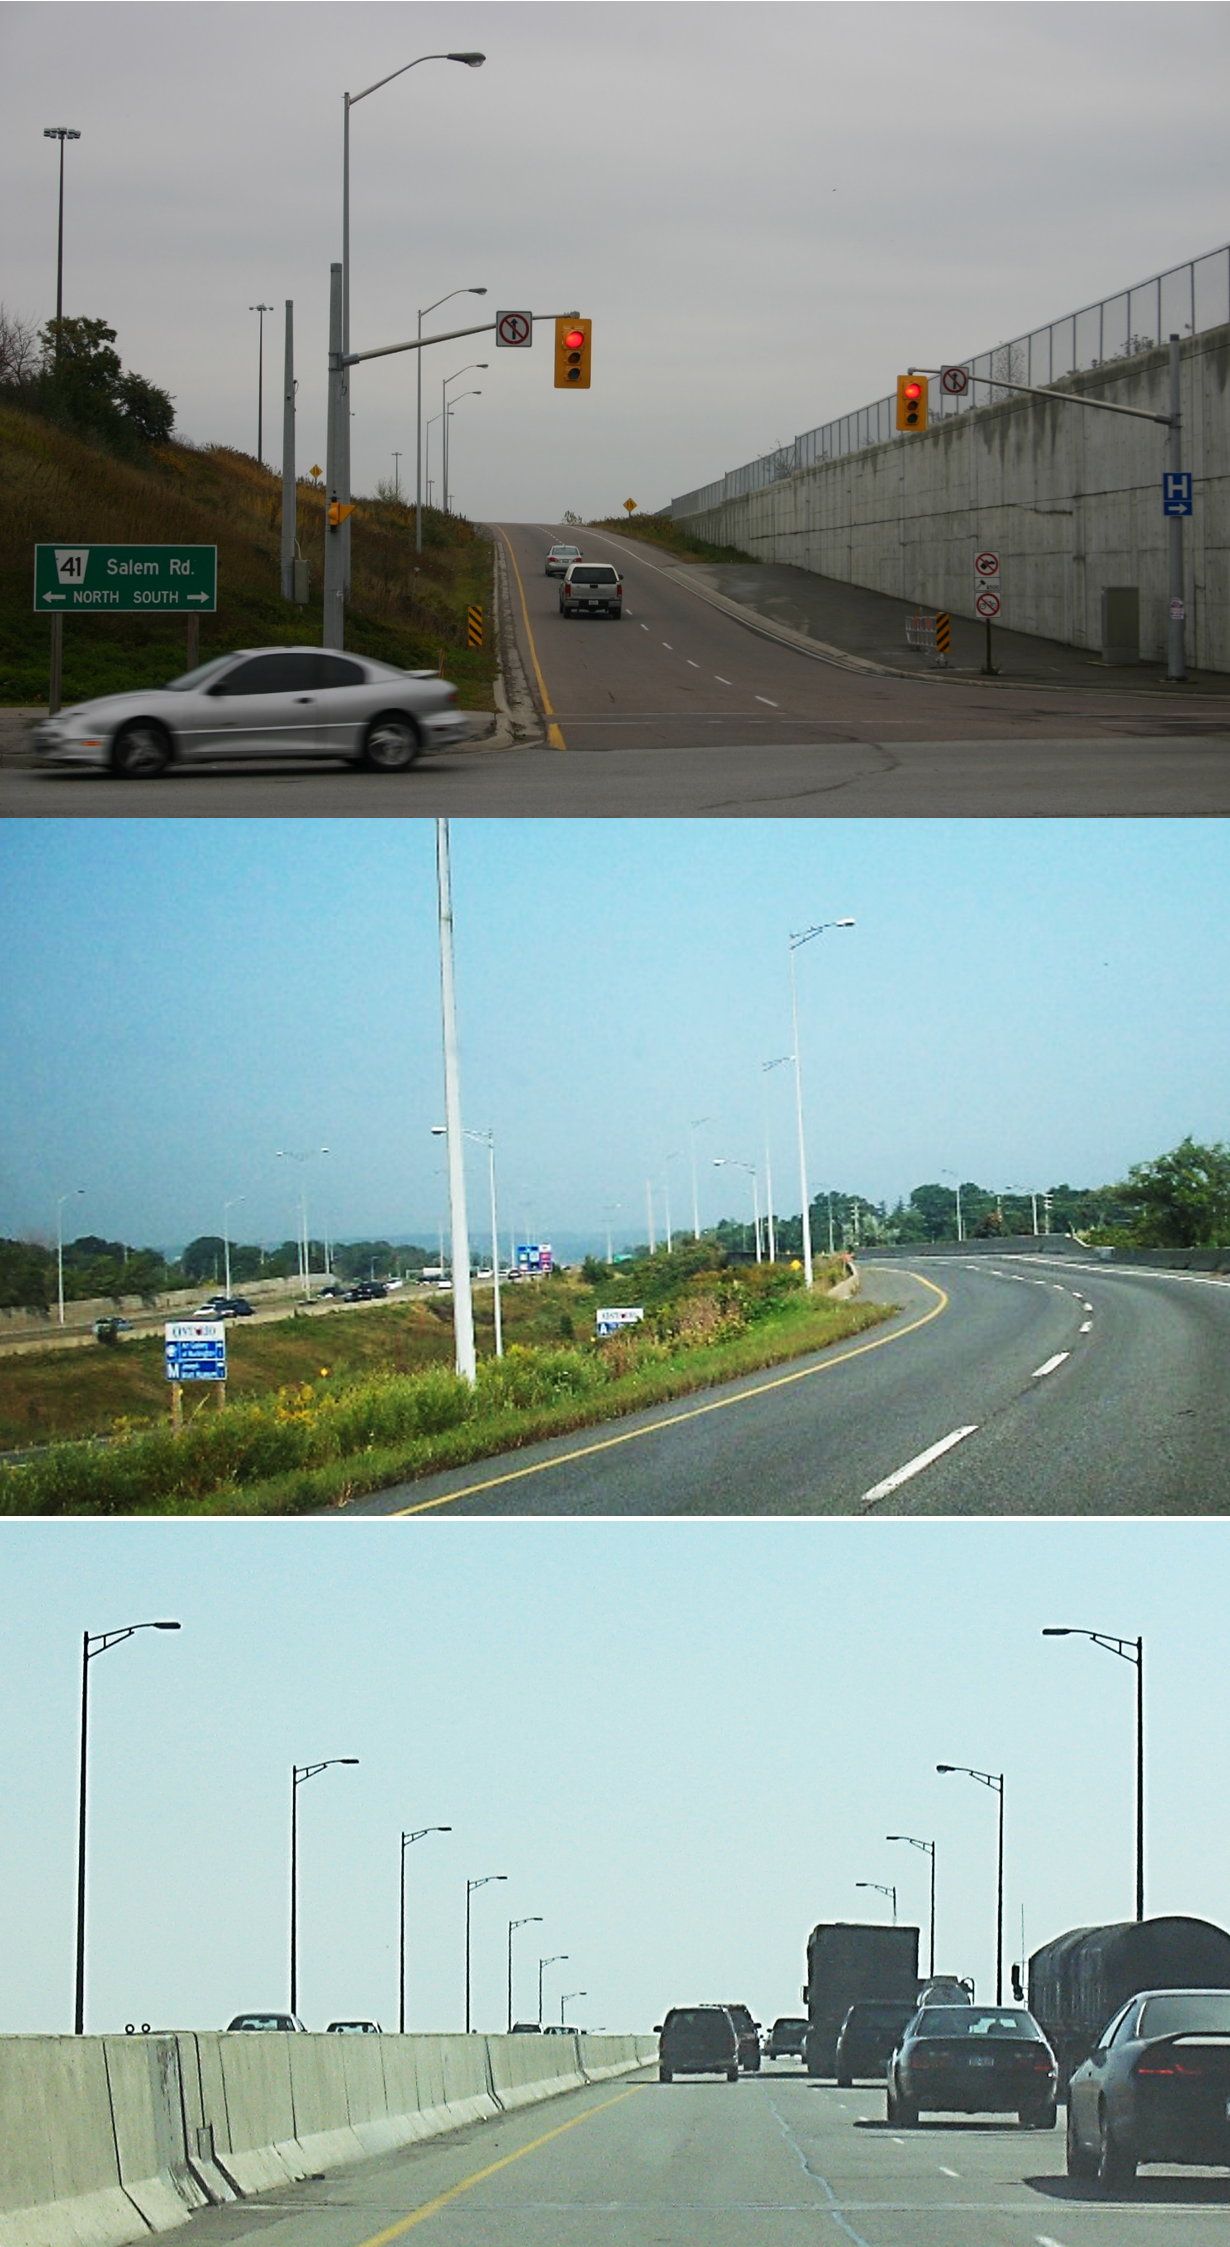 Photos displaying different types of highway illumination and traffic signals. The photos displays a set of traffic signals at the end of a ramp,